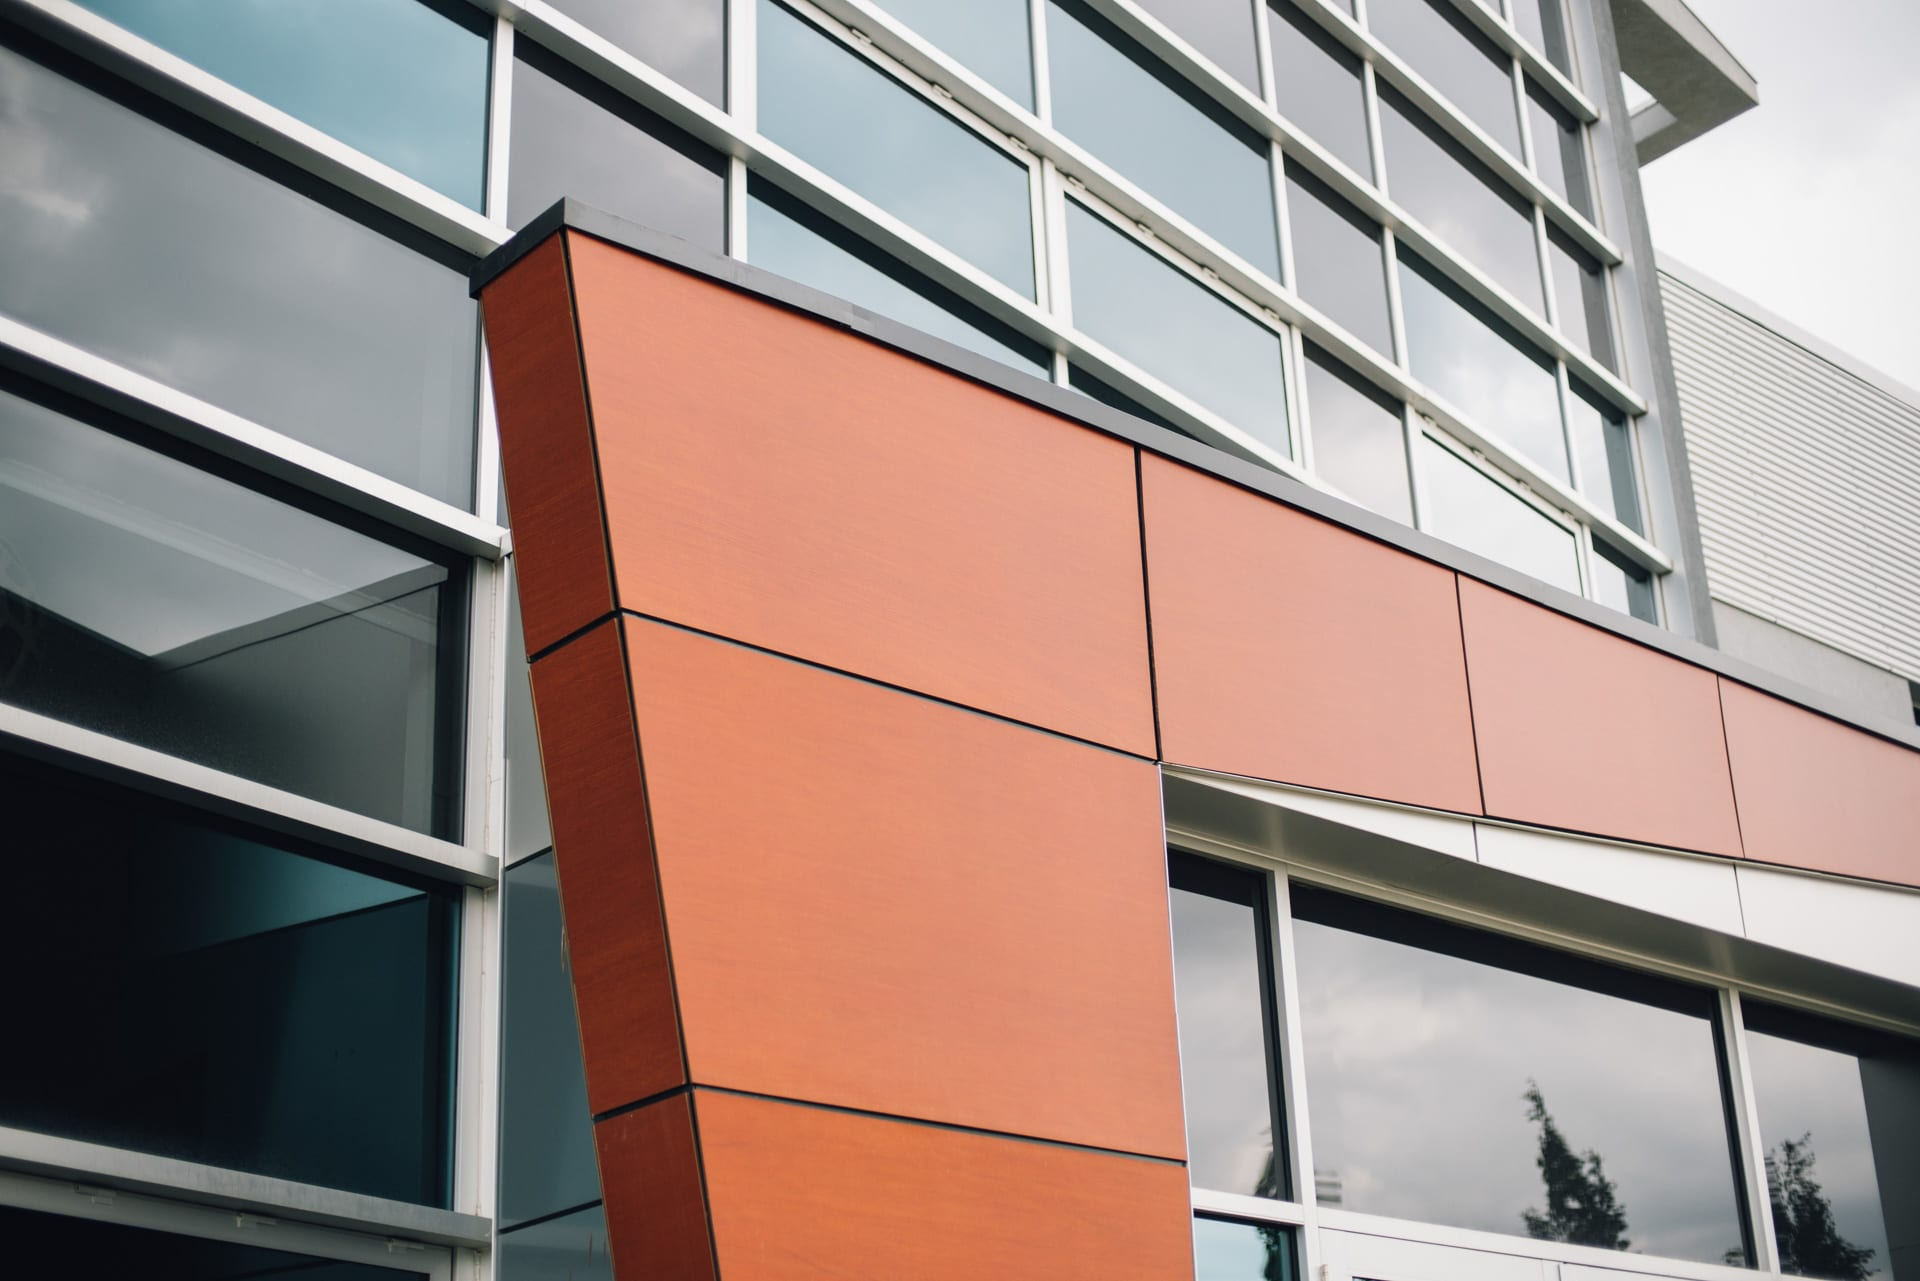 Exterior Composite Panels : Wood composite panels phenolic resin panel edmonton